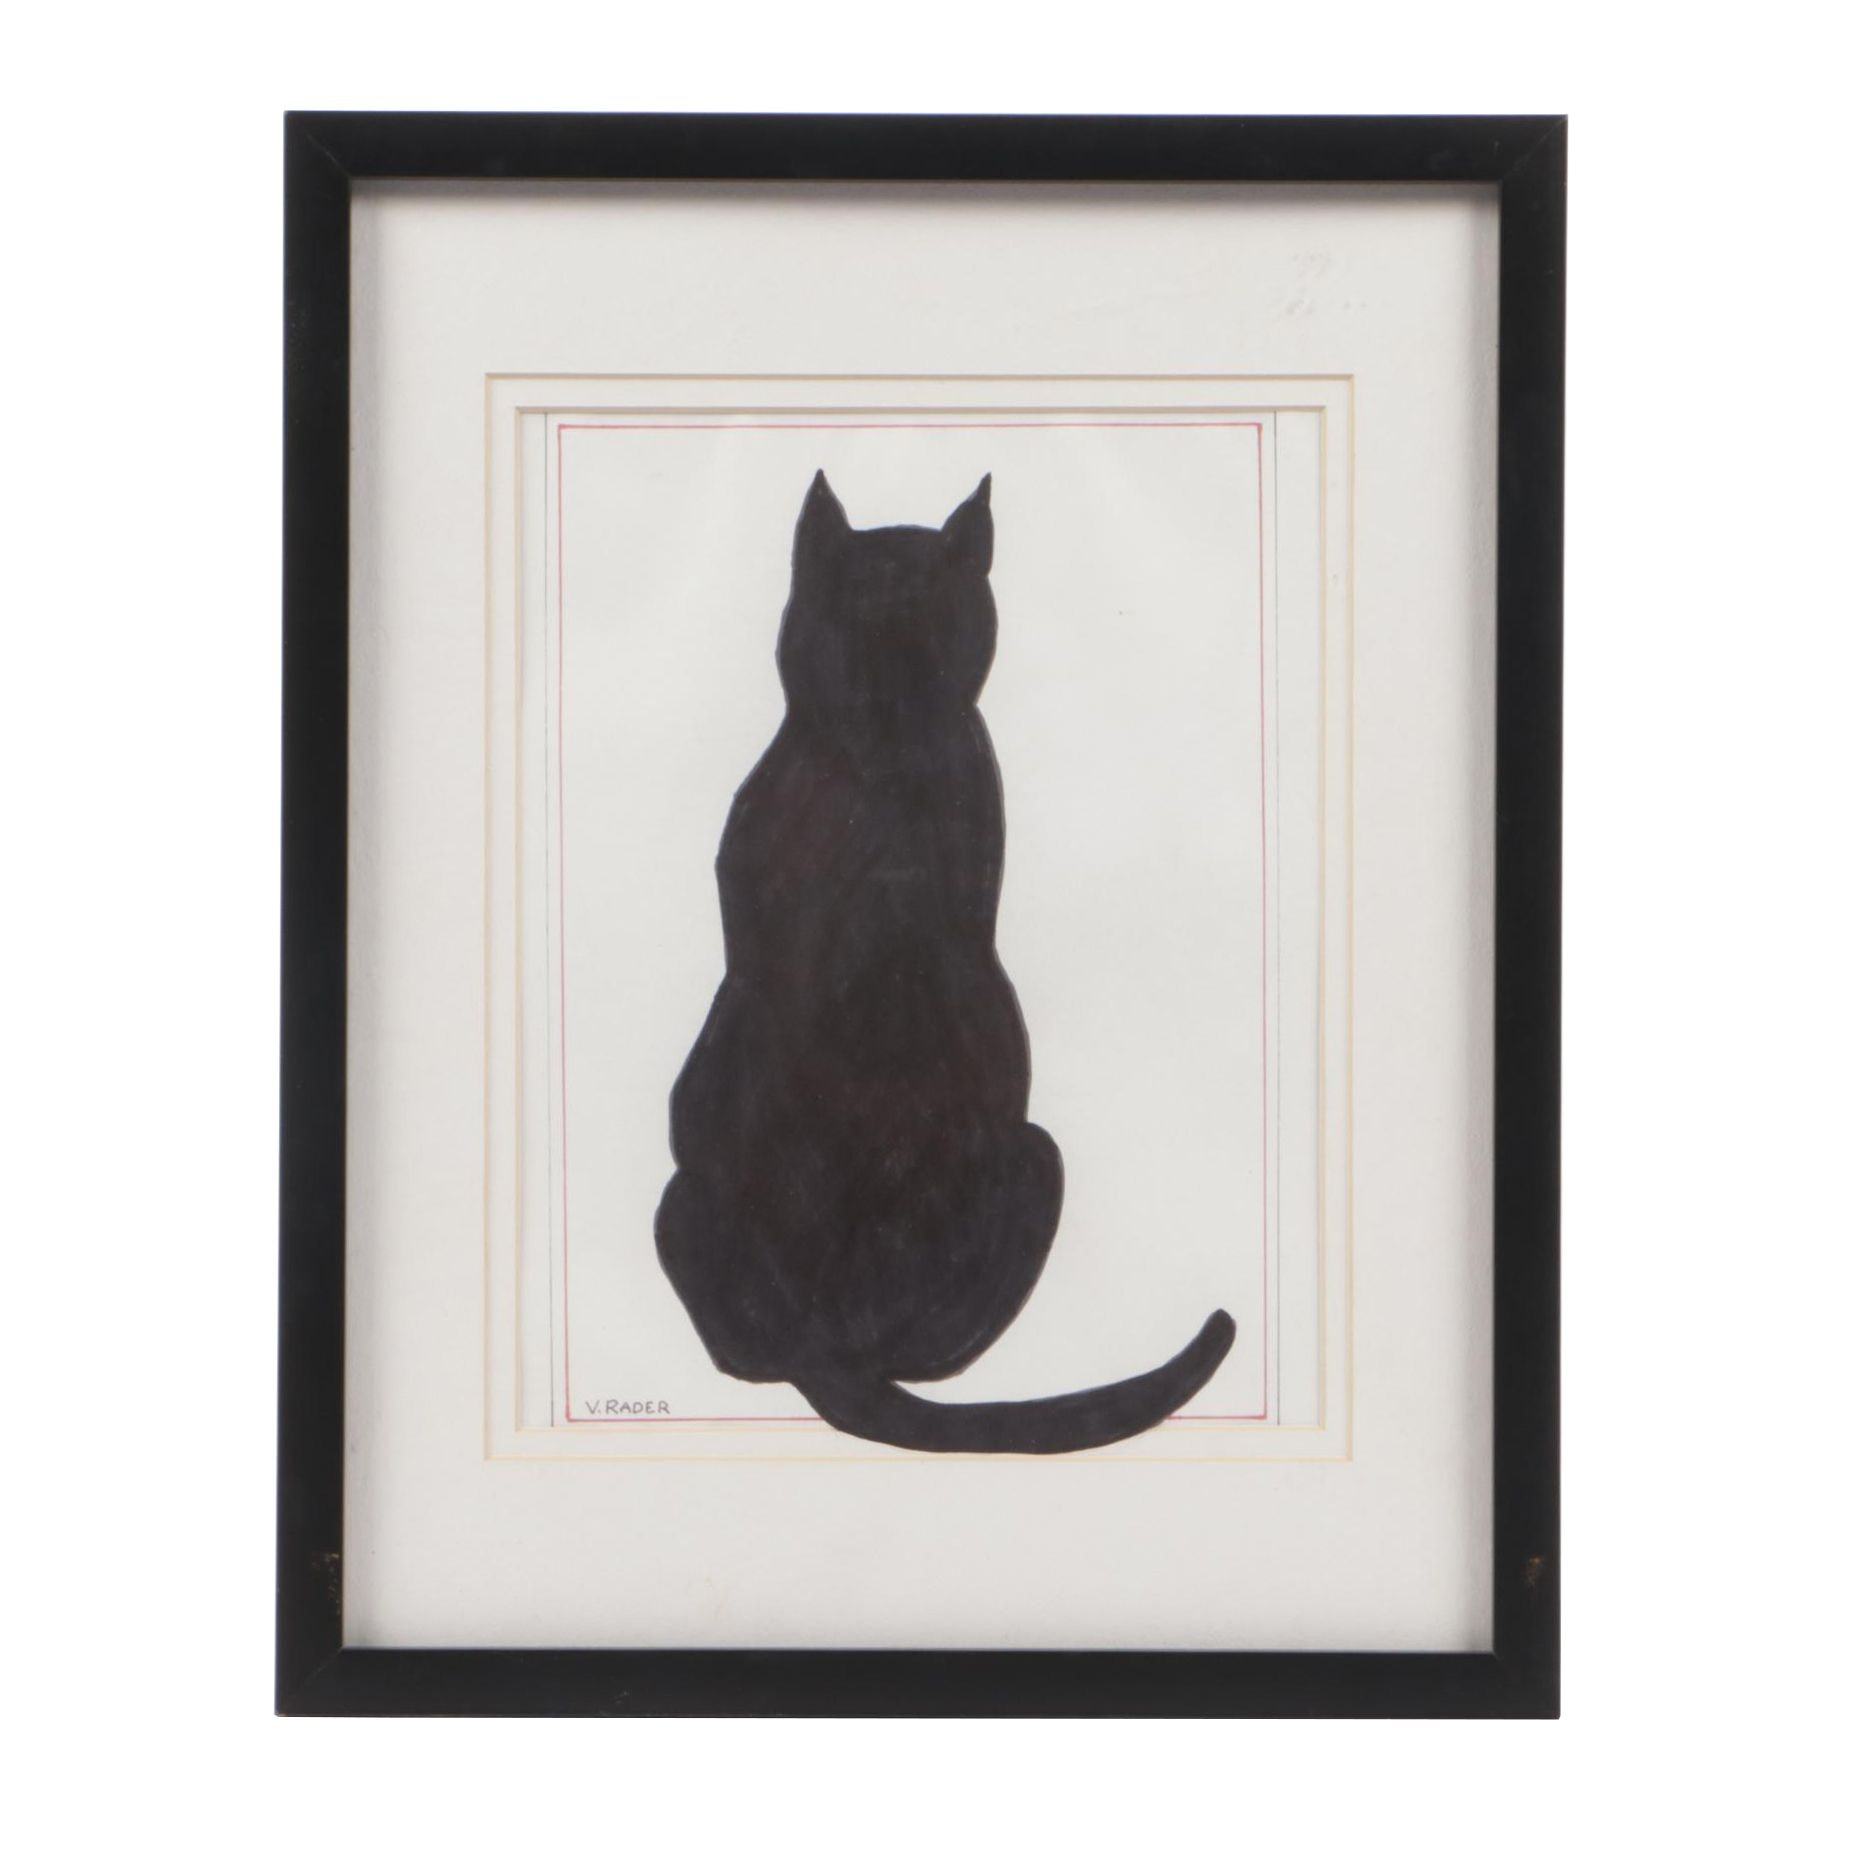 Vernon Rader Ink Drawing of a Cat